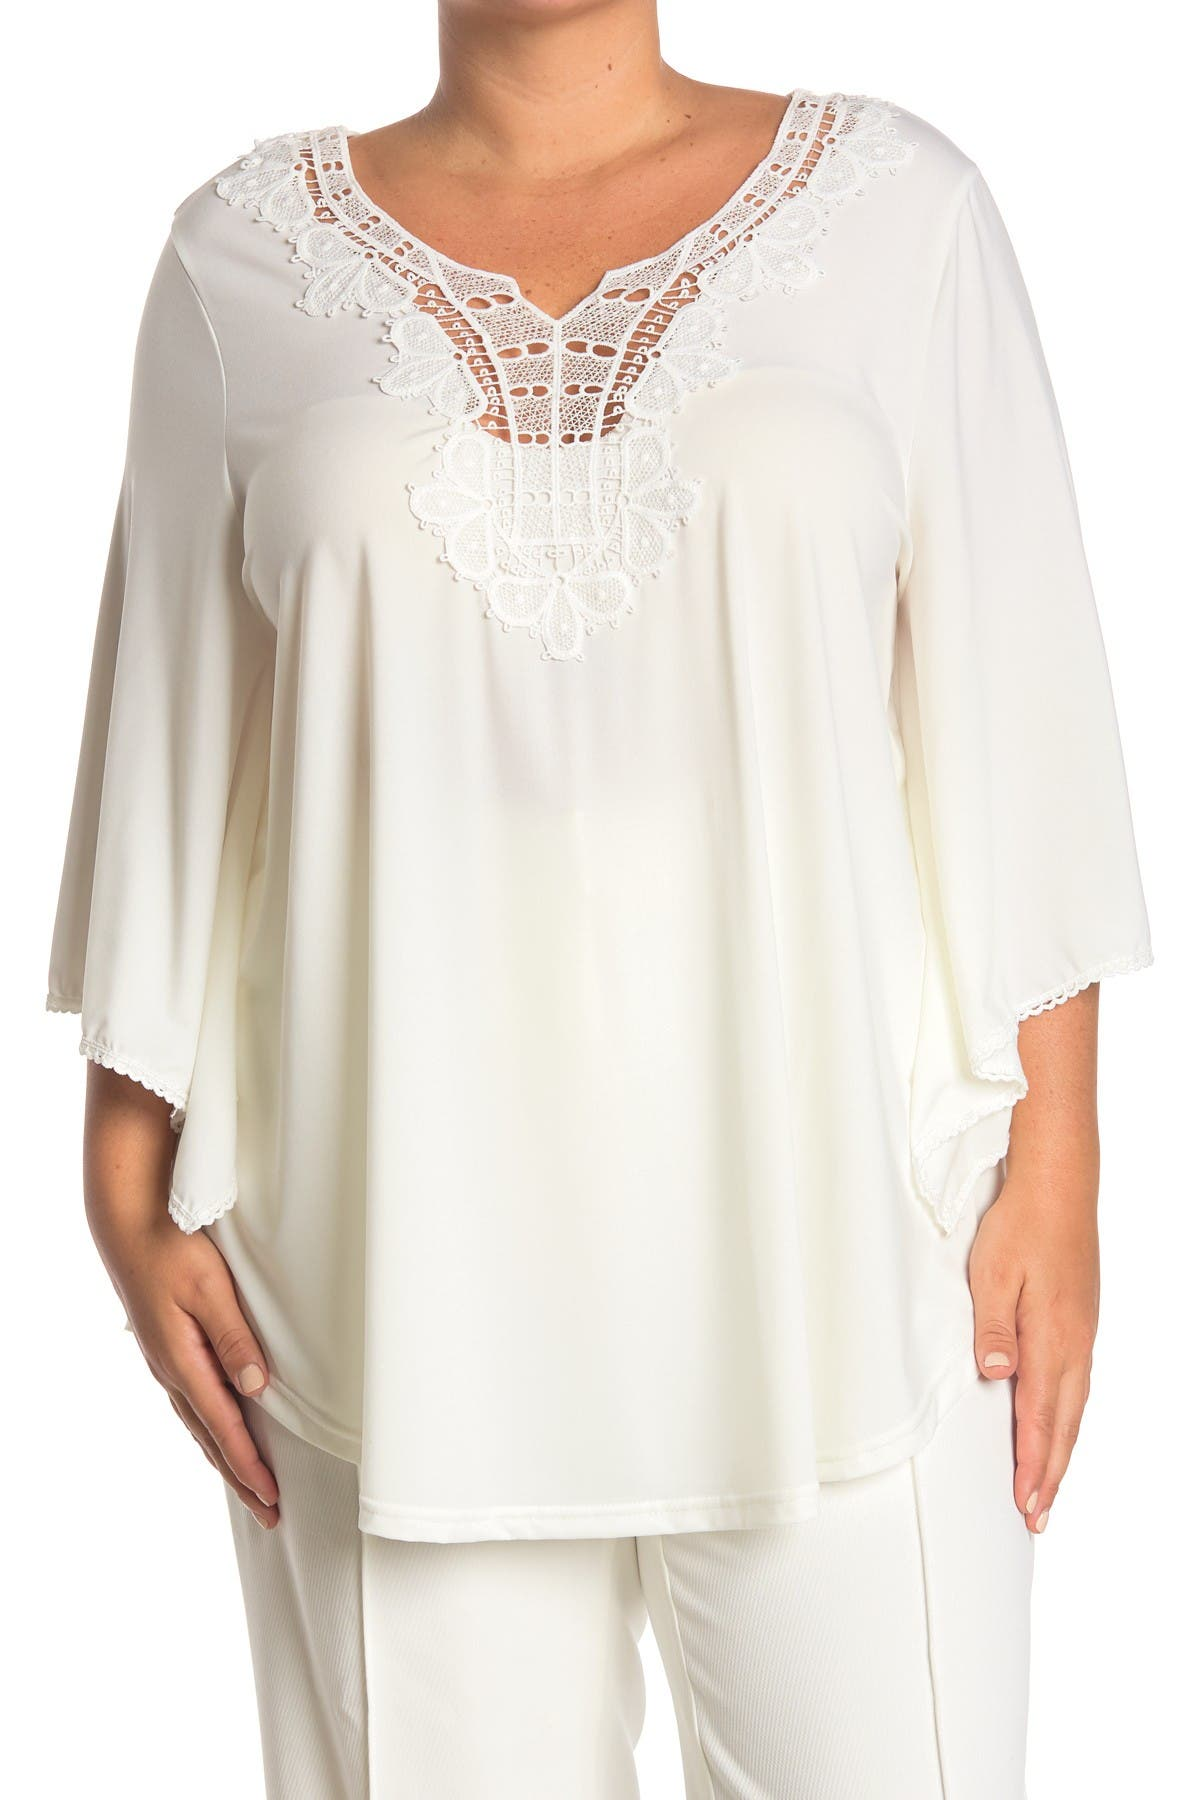 Image of STEM AND VINE Lace Notched Neck Top